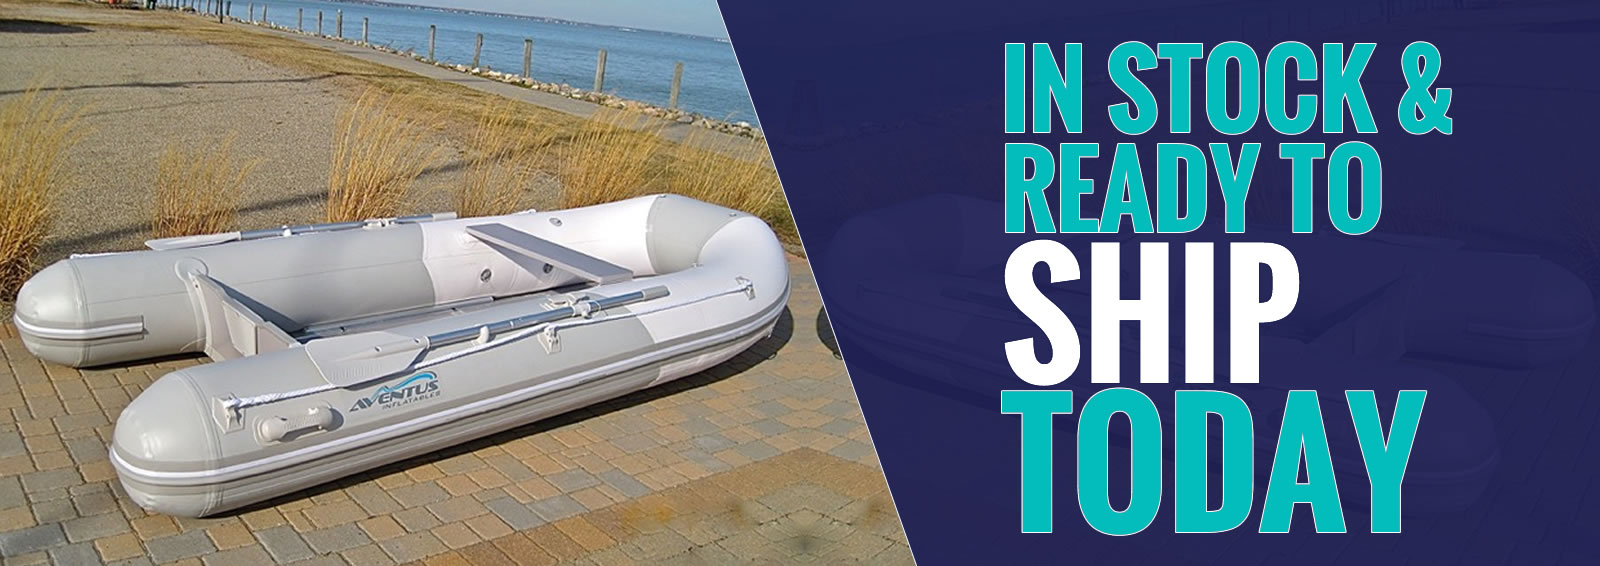 DINGHY CONCEPTS - Inflatable Boat Company - Inflatable Boat